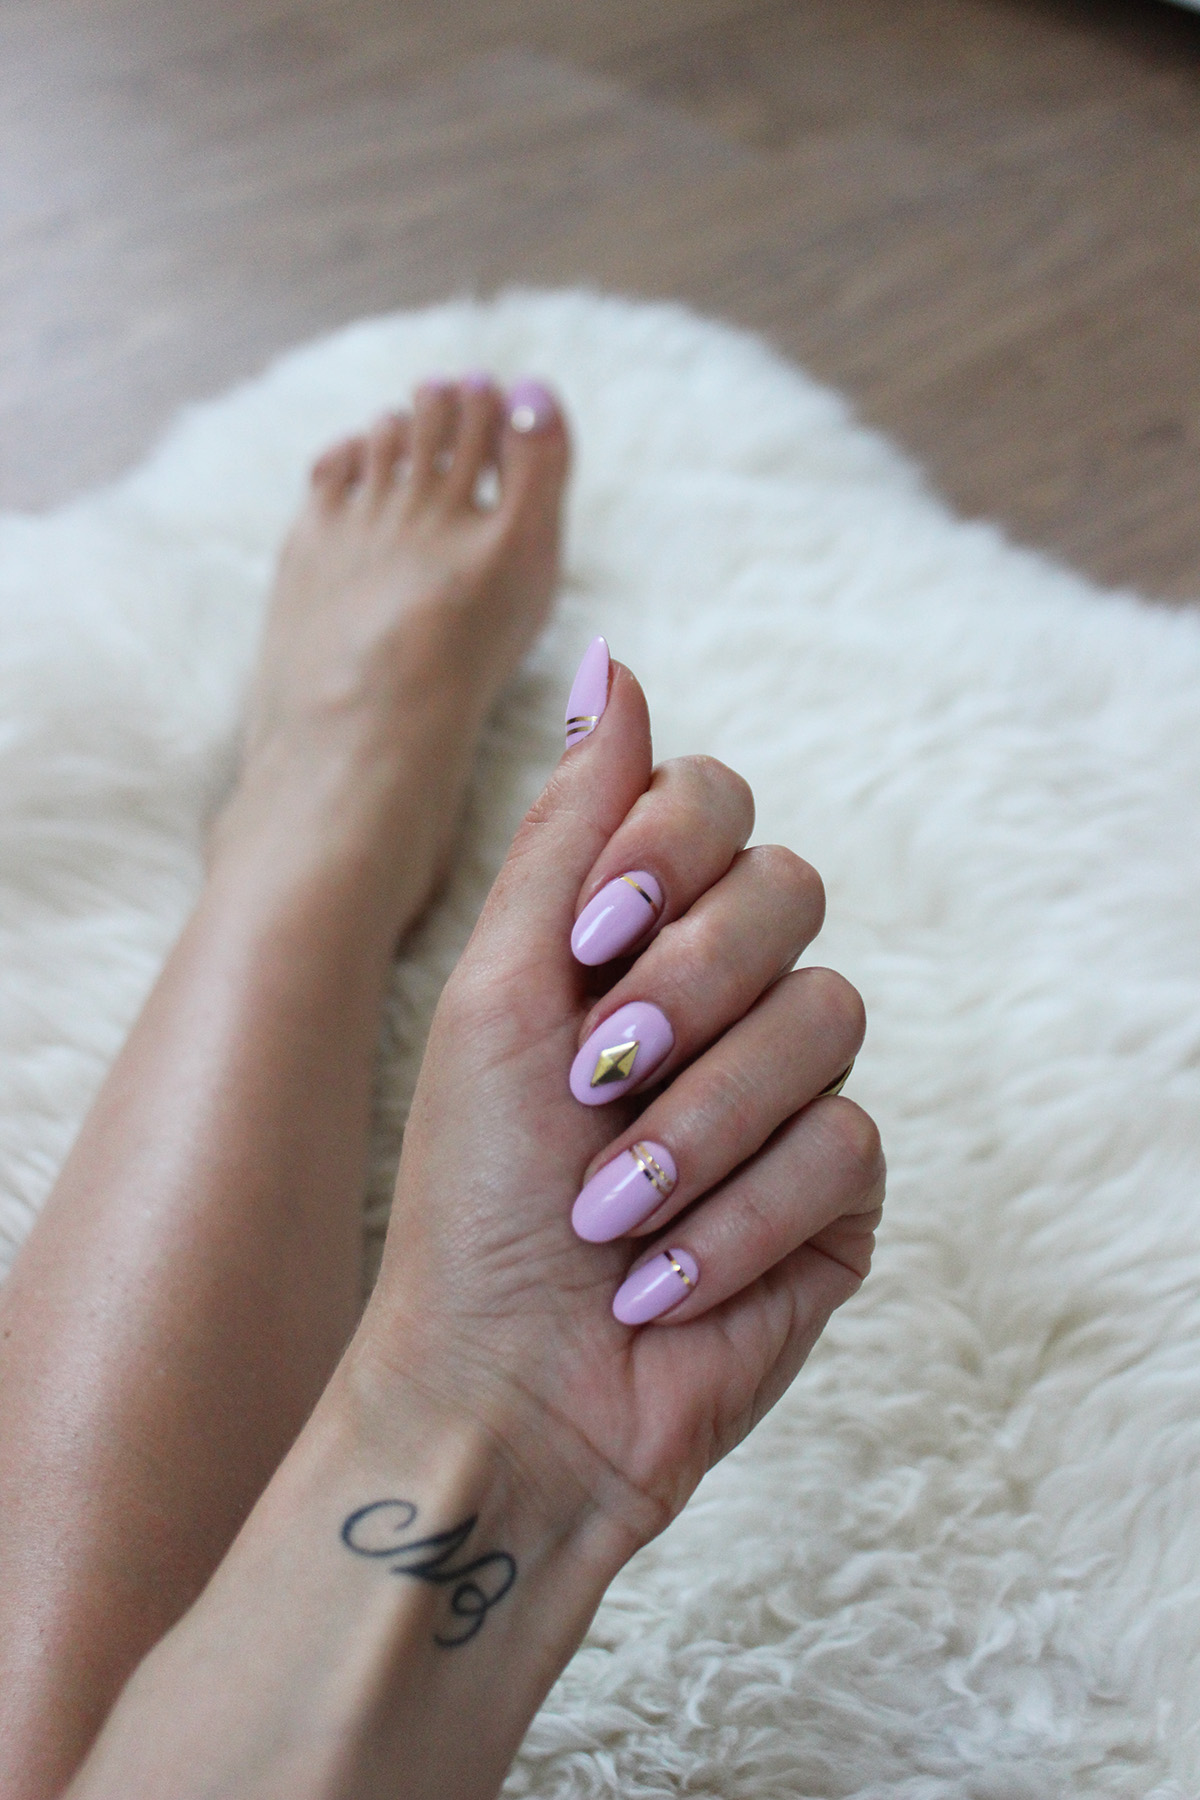 Summer Nails Ioana Chisiu Fashion Beauty Lifestyle Blog